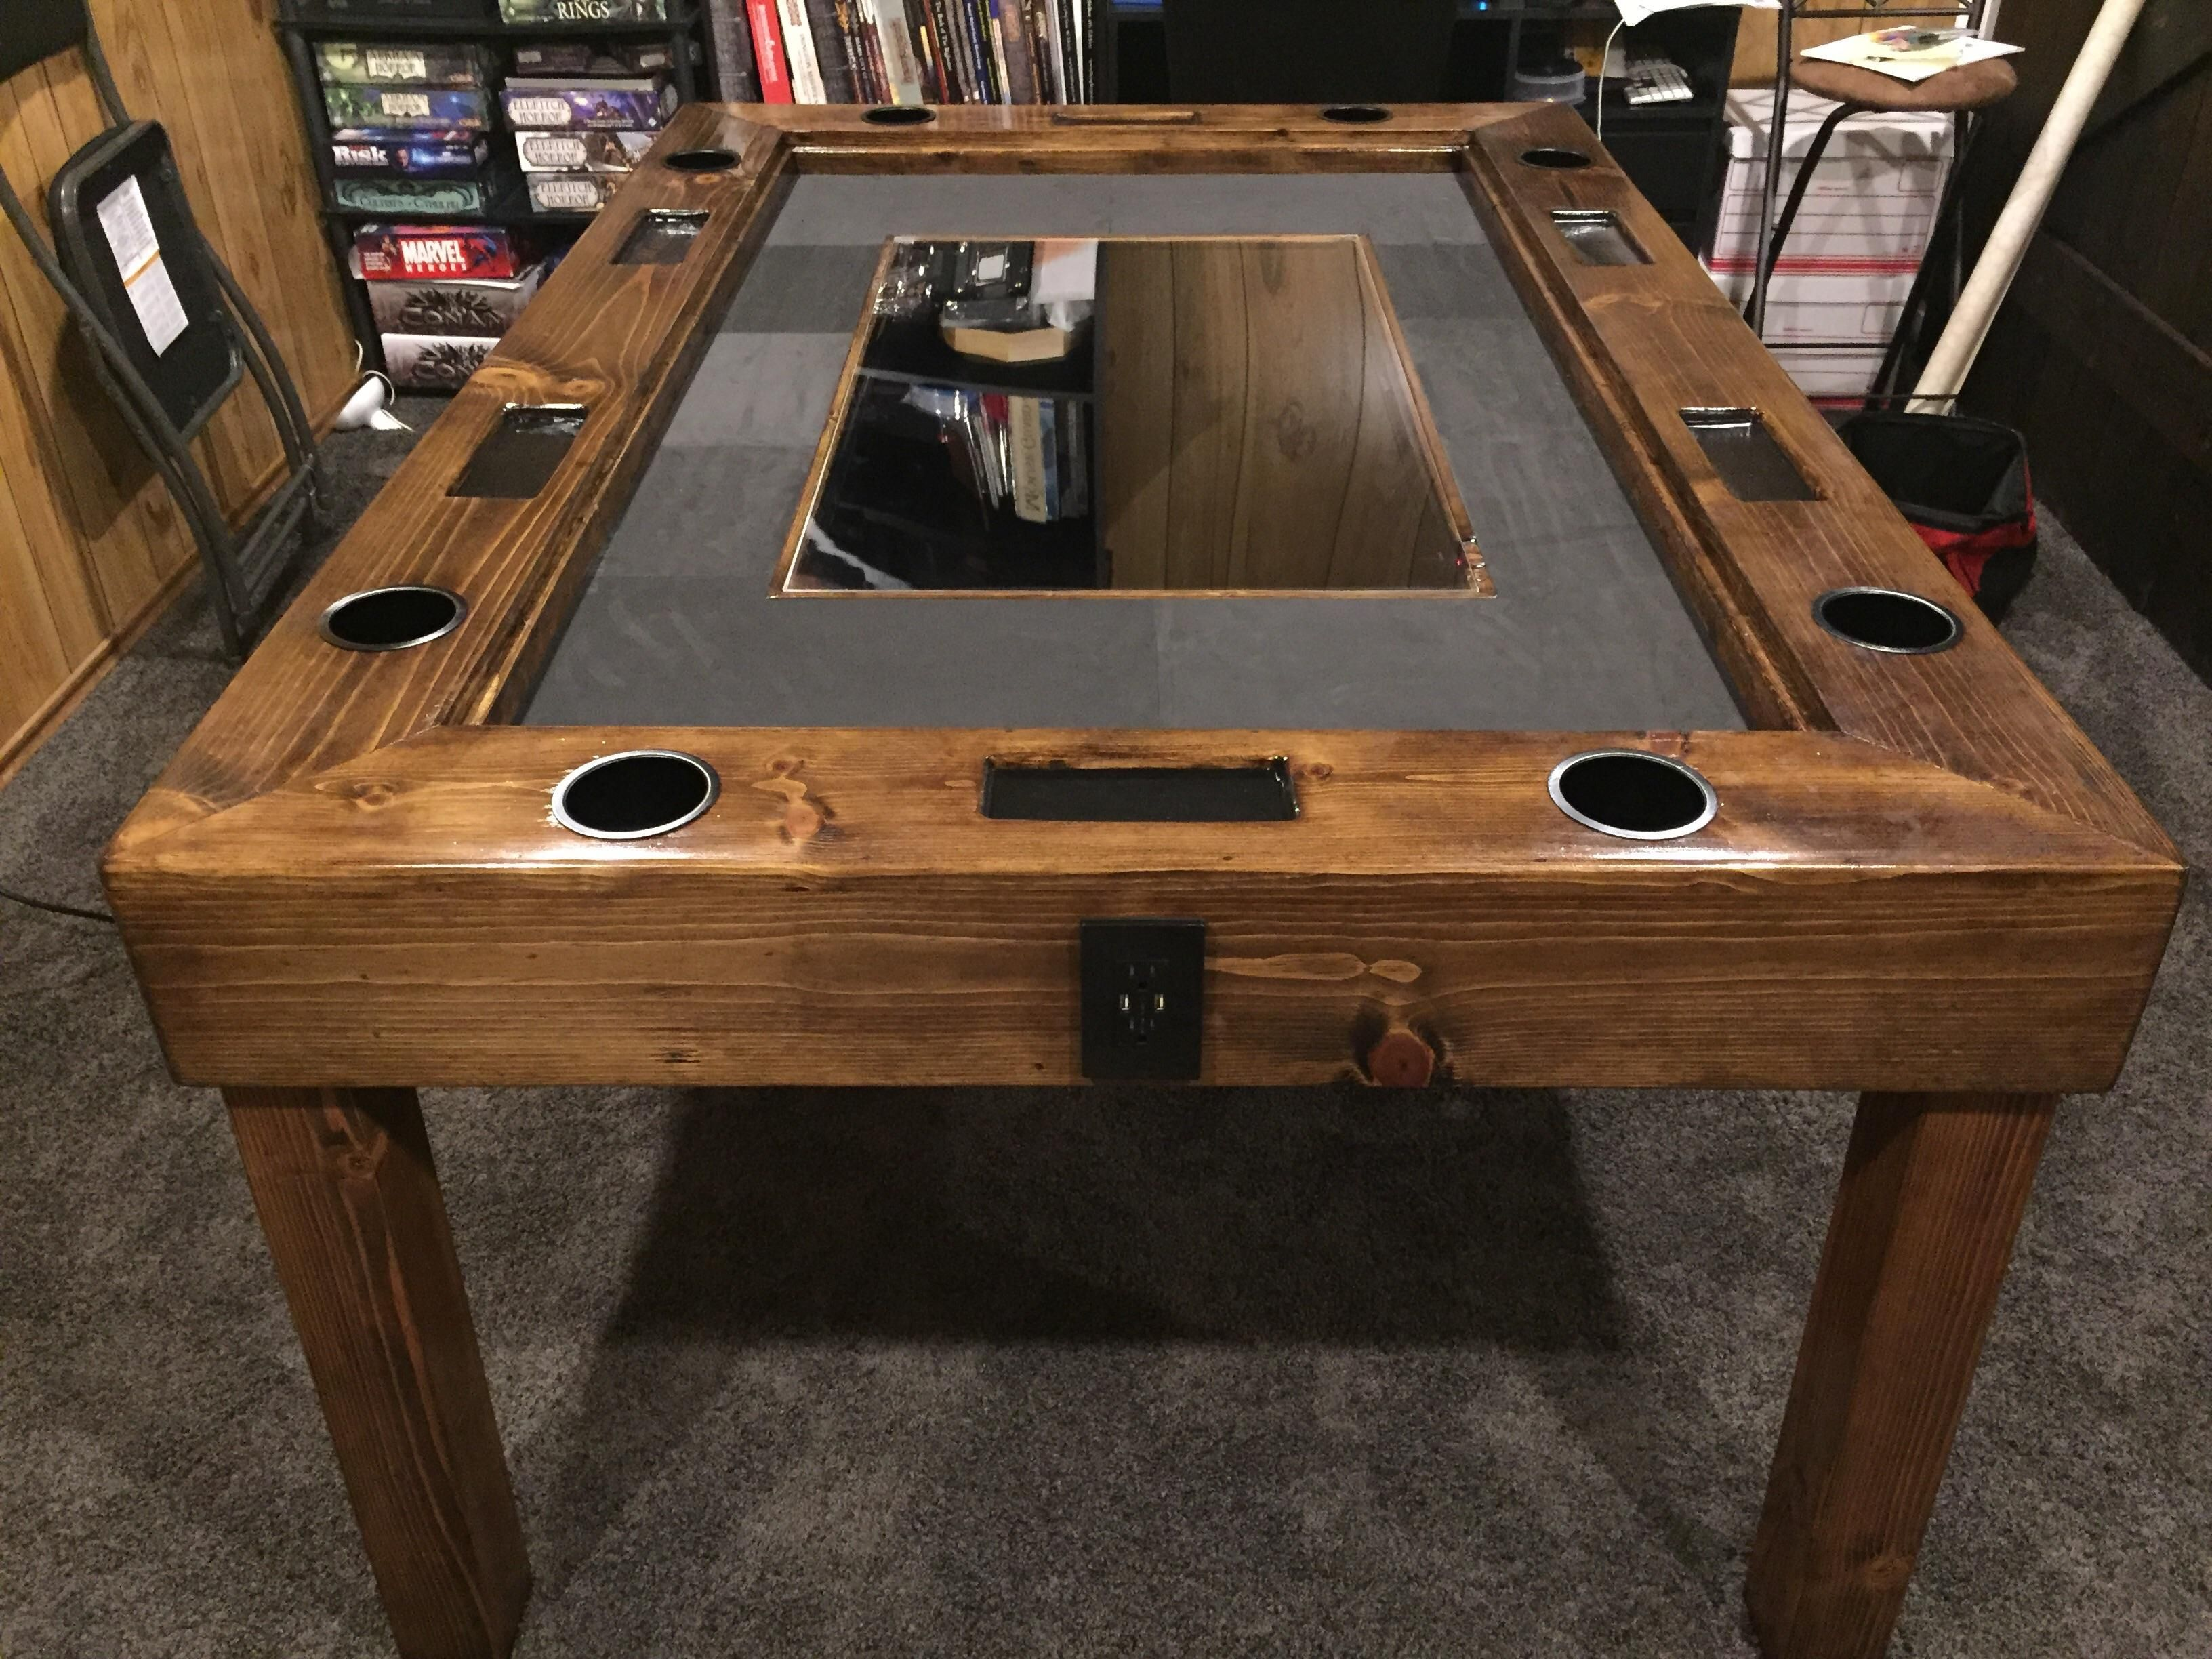 Gaming table with monitor for digital maps http//ift.tt